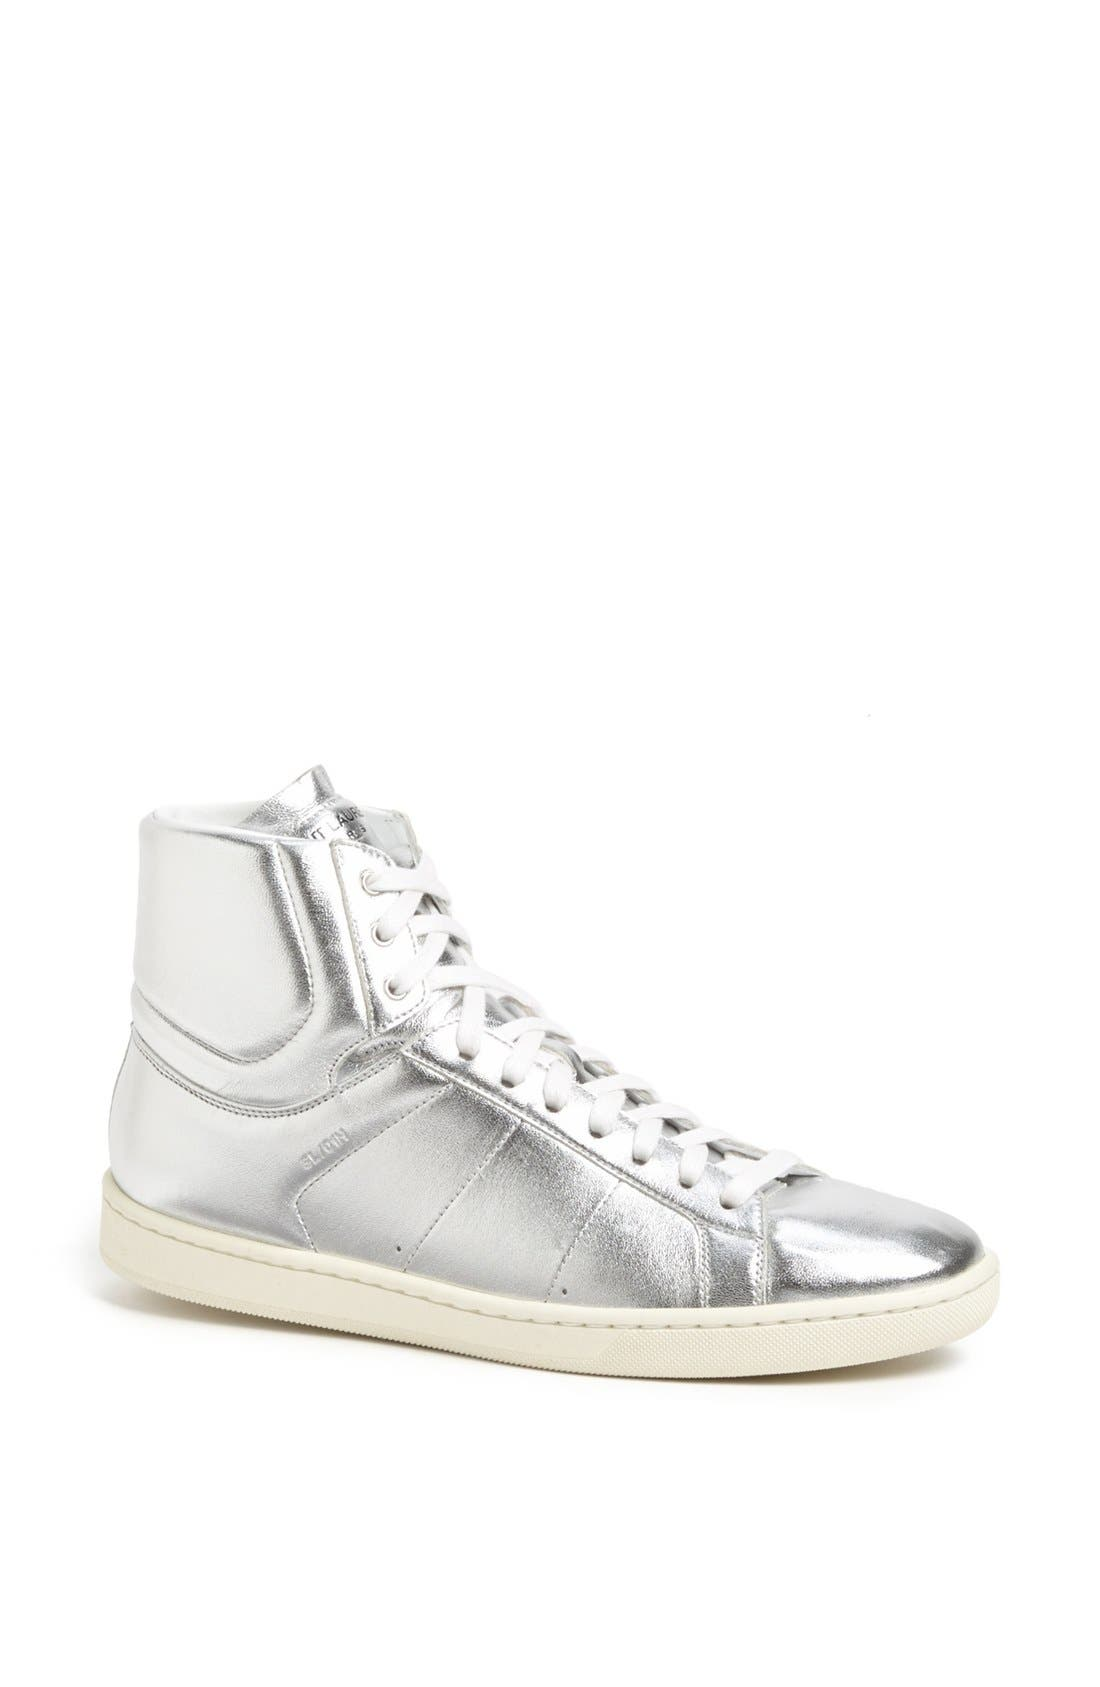 Alternate Image 1 Selected - Saint Laurent 'Classic Court' Lambskin Leather High Top Sneaker